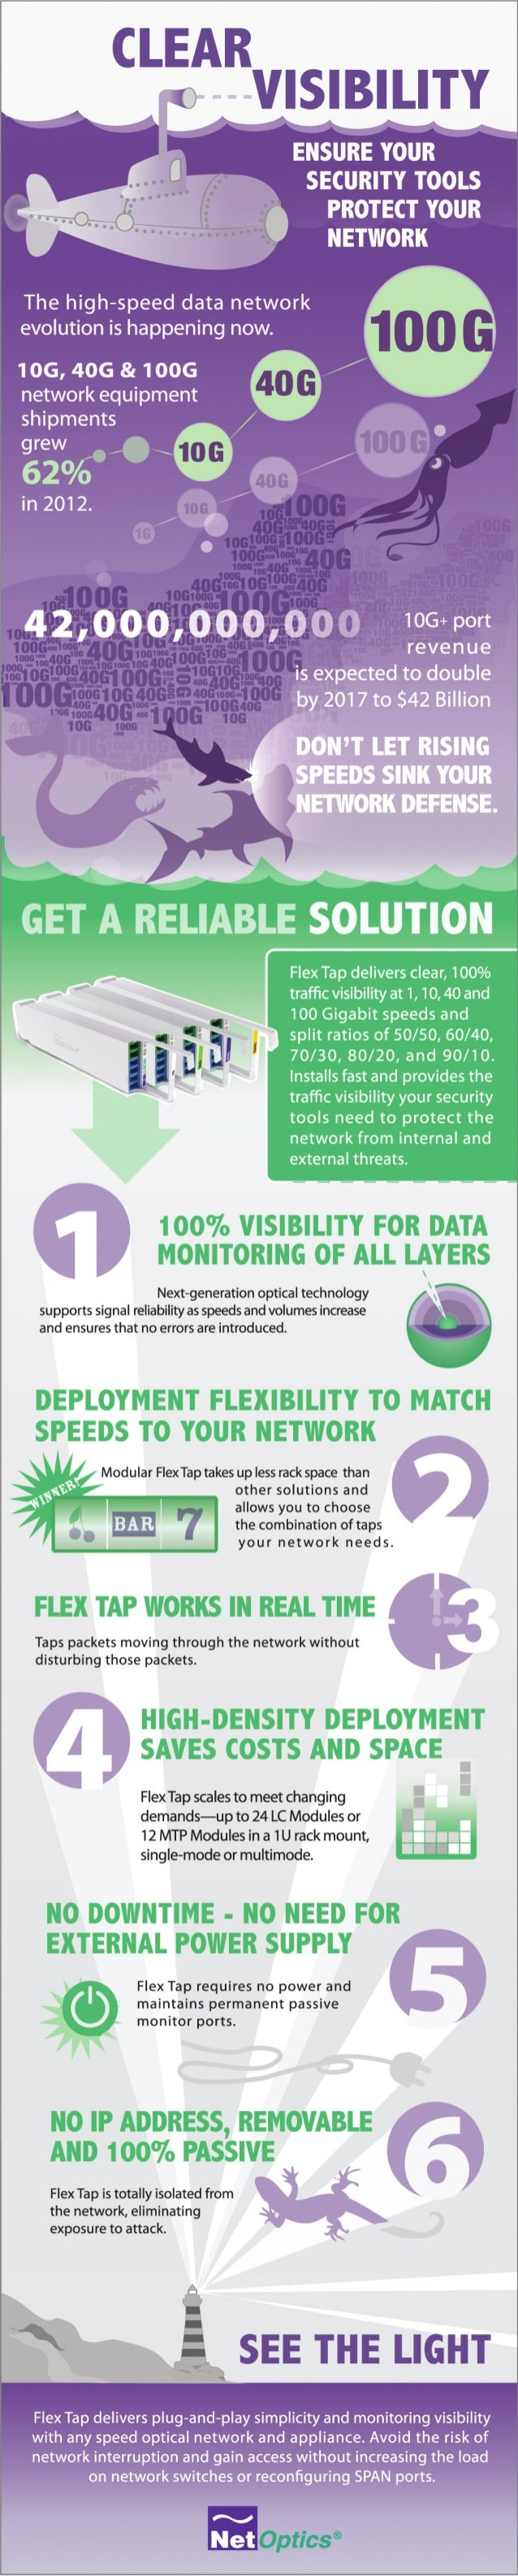 Infographic: Clear Visibility - Ensure Your Security Tools Protect Your Network